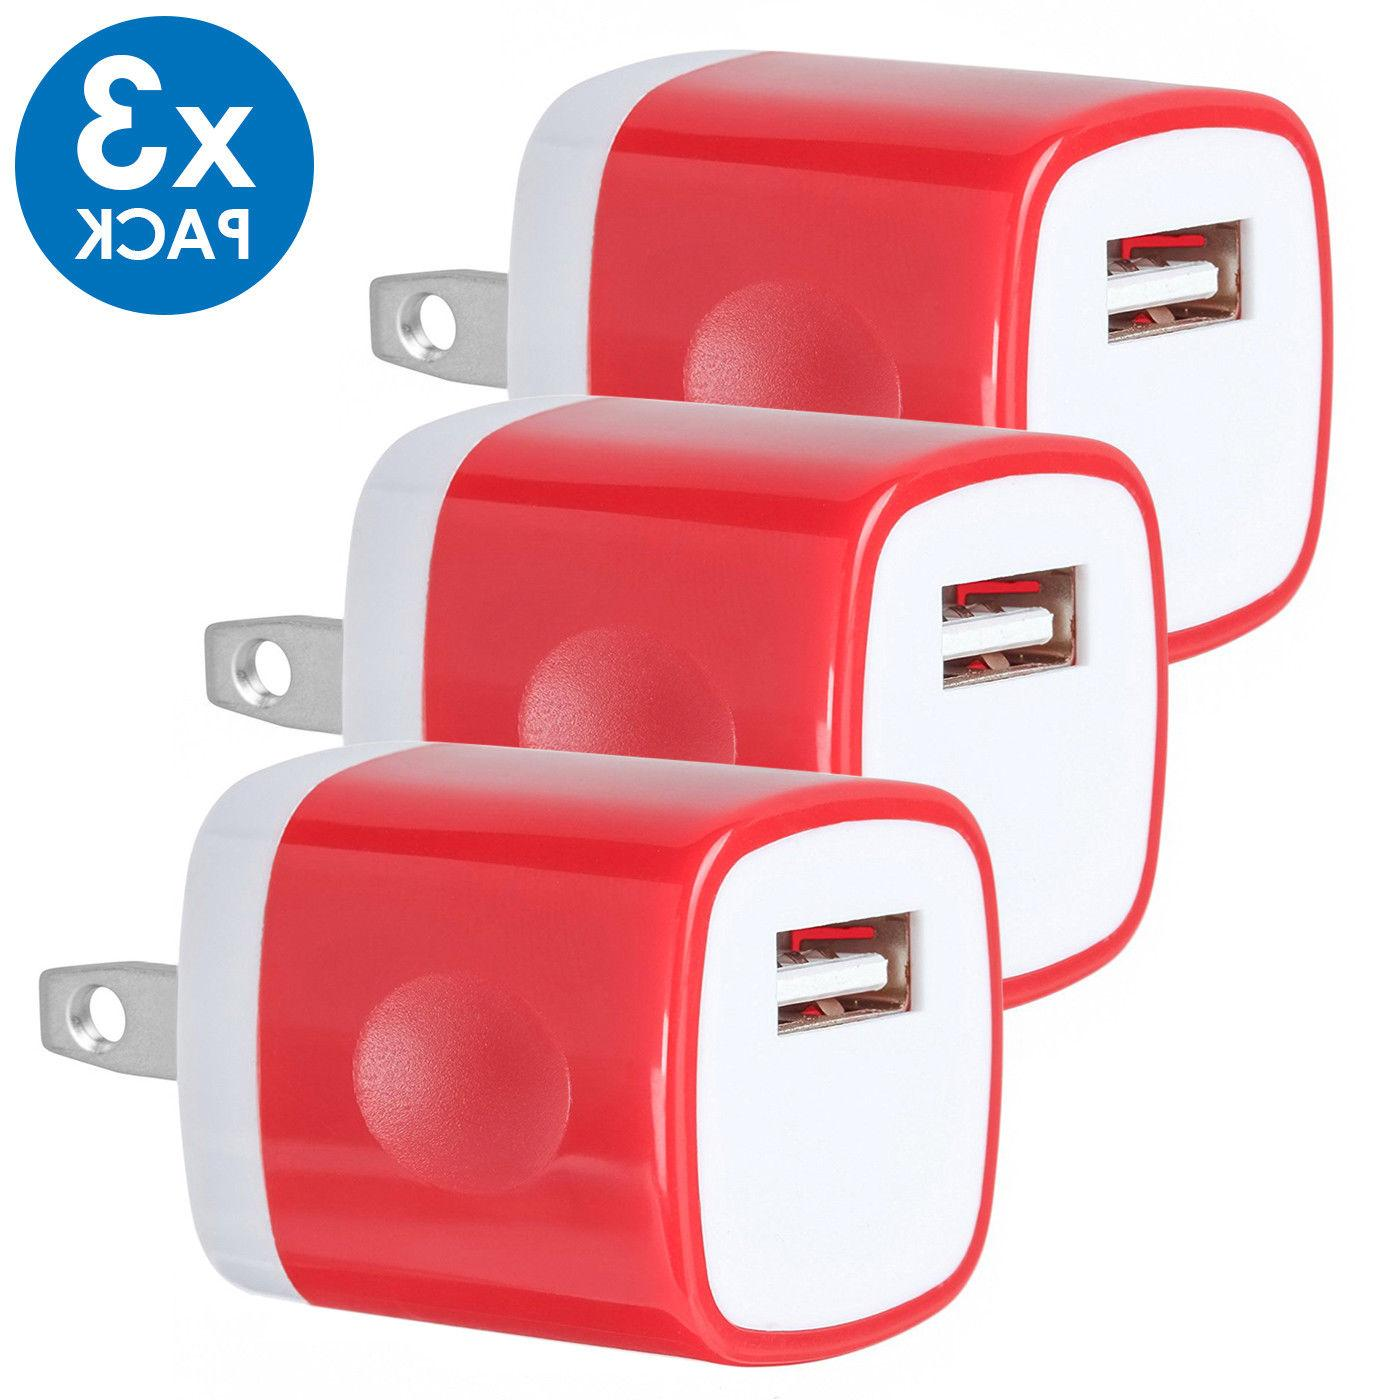 3-PACK USB Wall Charger AC Adapter US Plug FOR iPhone 8 Xs Samsung LG